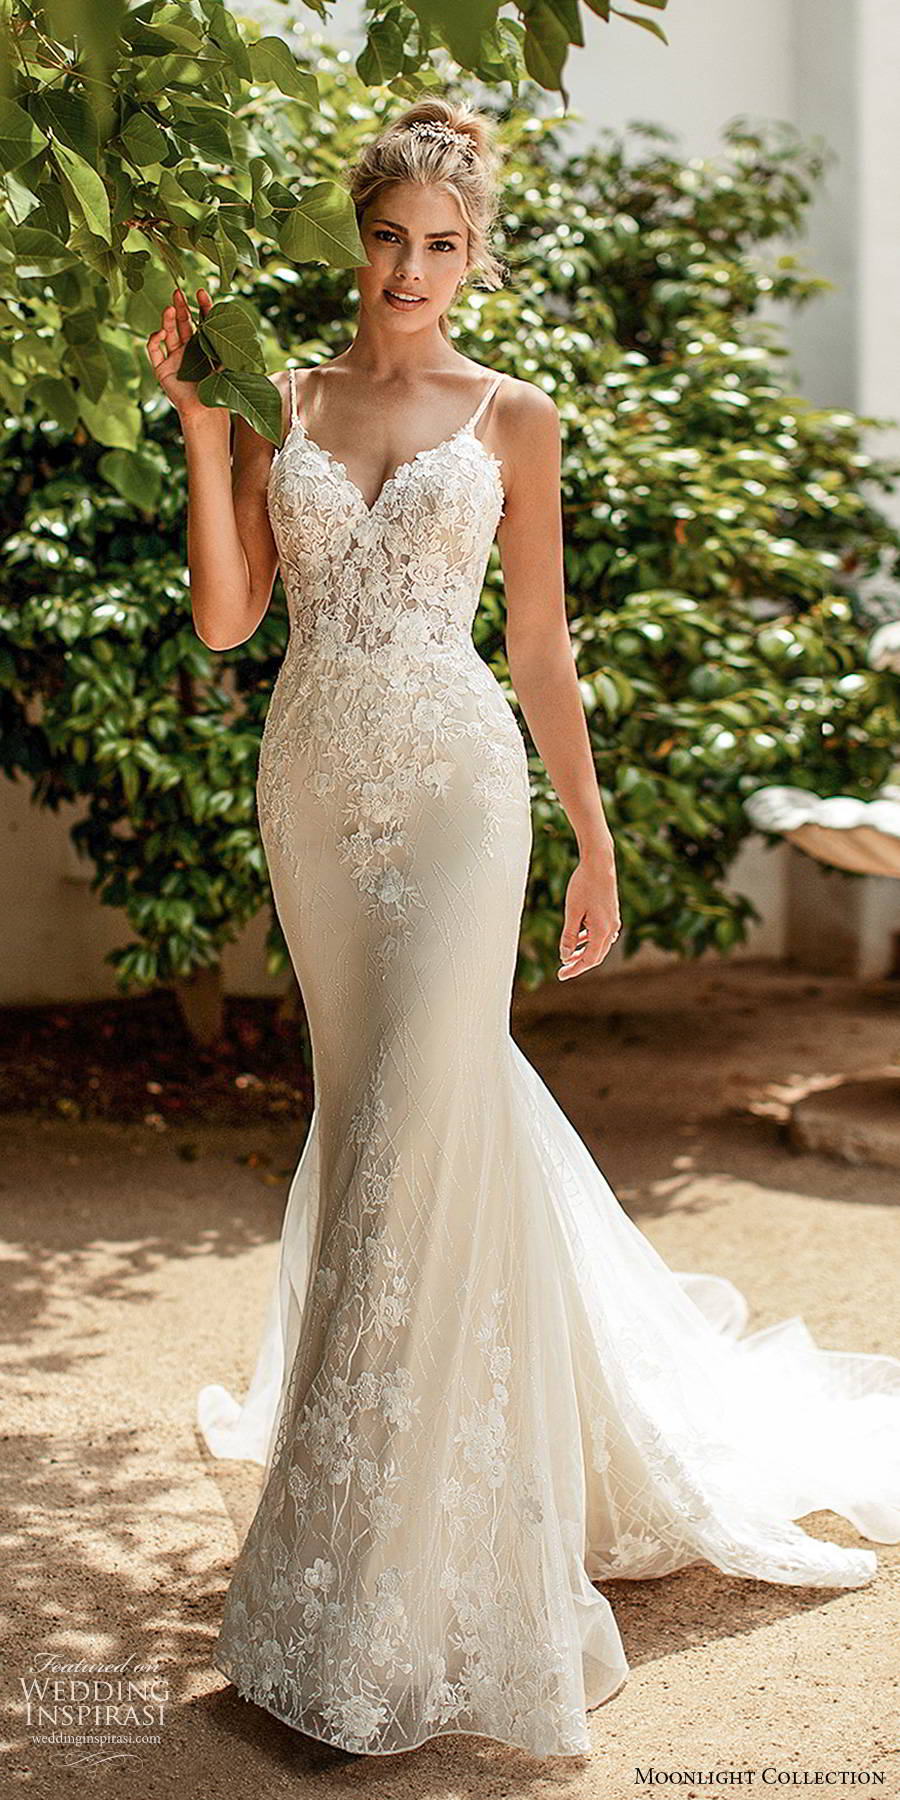 moonlight collection spring 2020 bridal sleeveless thin straps sweetheart neckline embellished bodice elegant romantic sheath mermaid wedding dress scoop back chapel train (5) mv